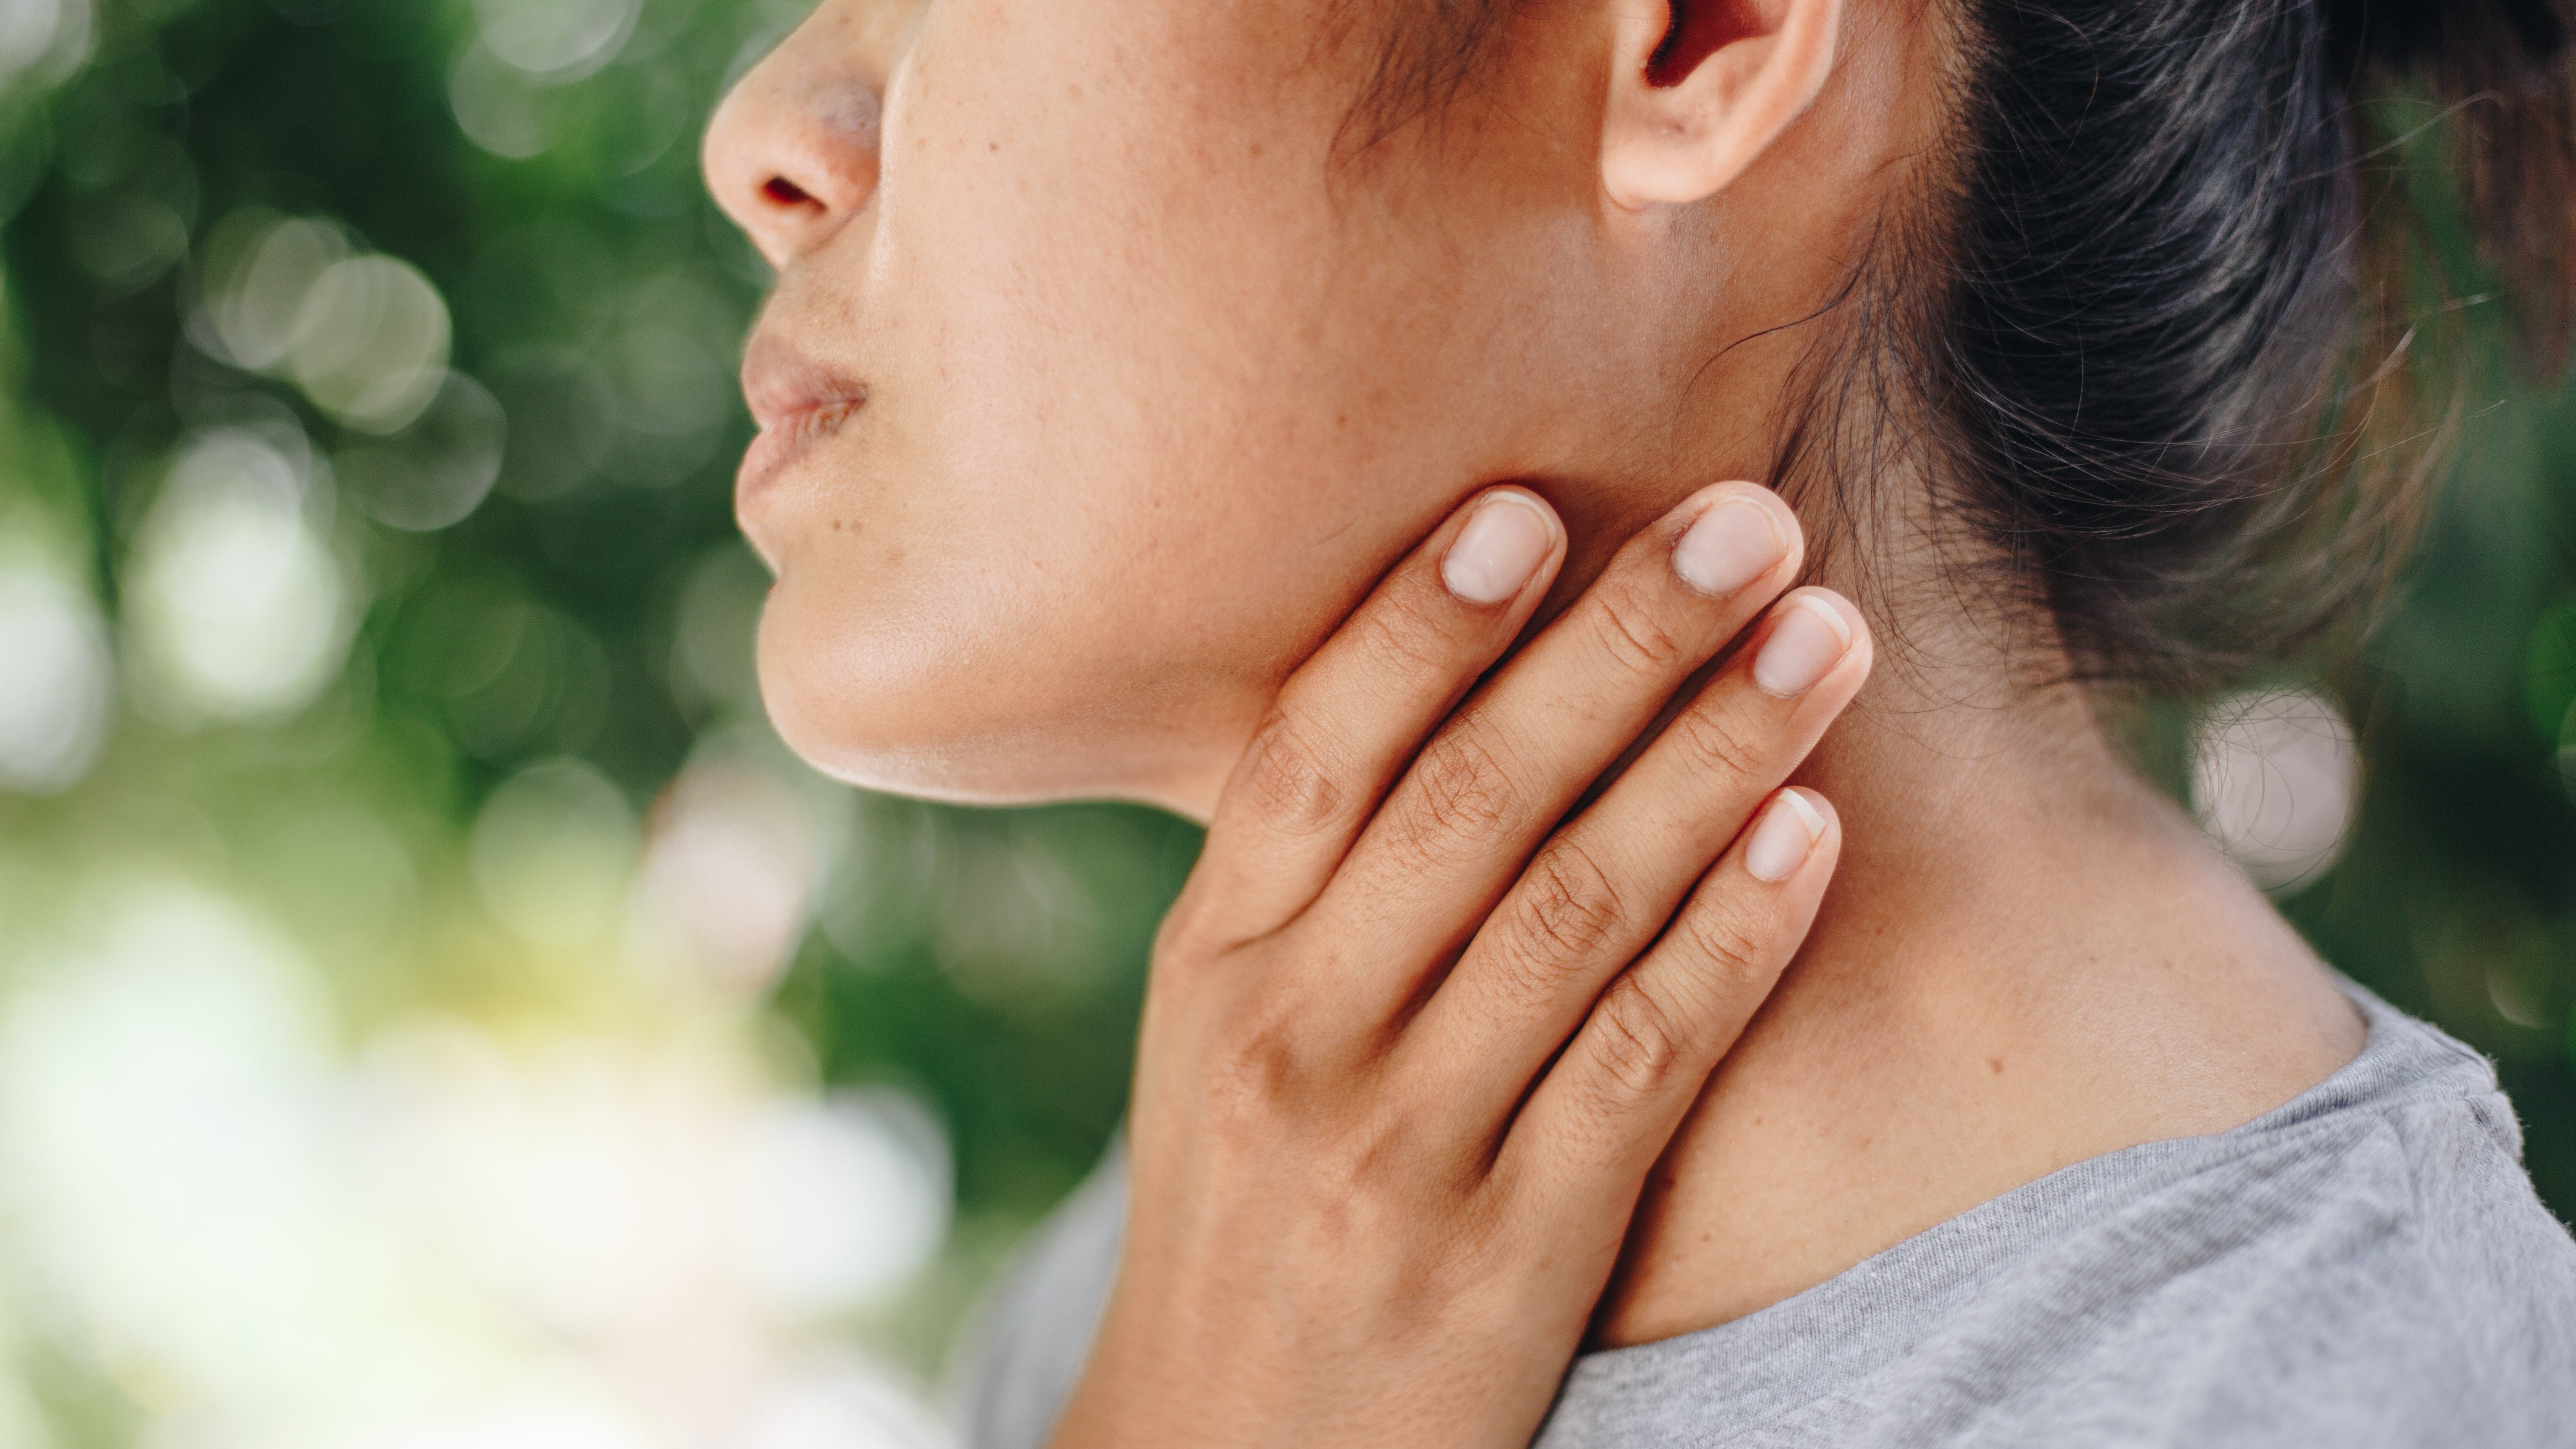 swollen lymph nodes in groin female and rash